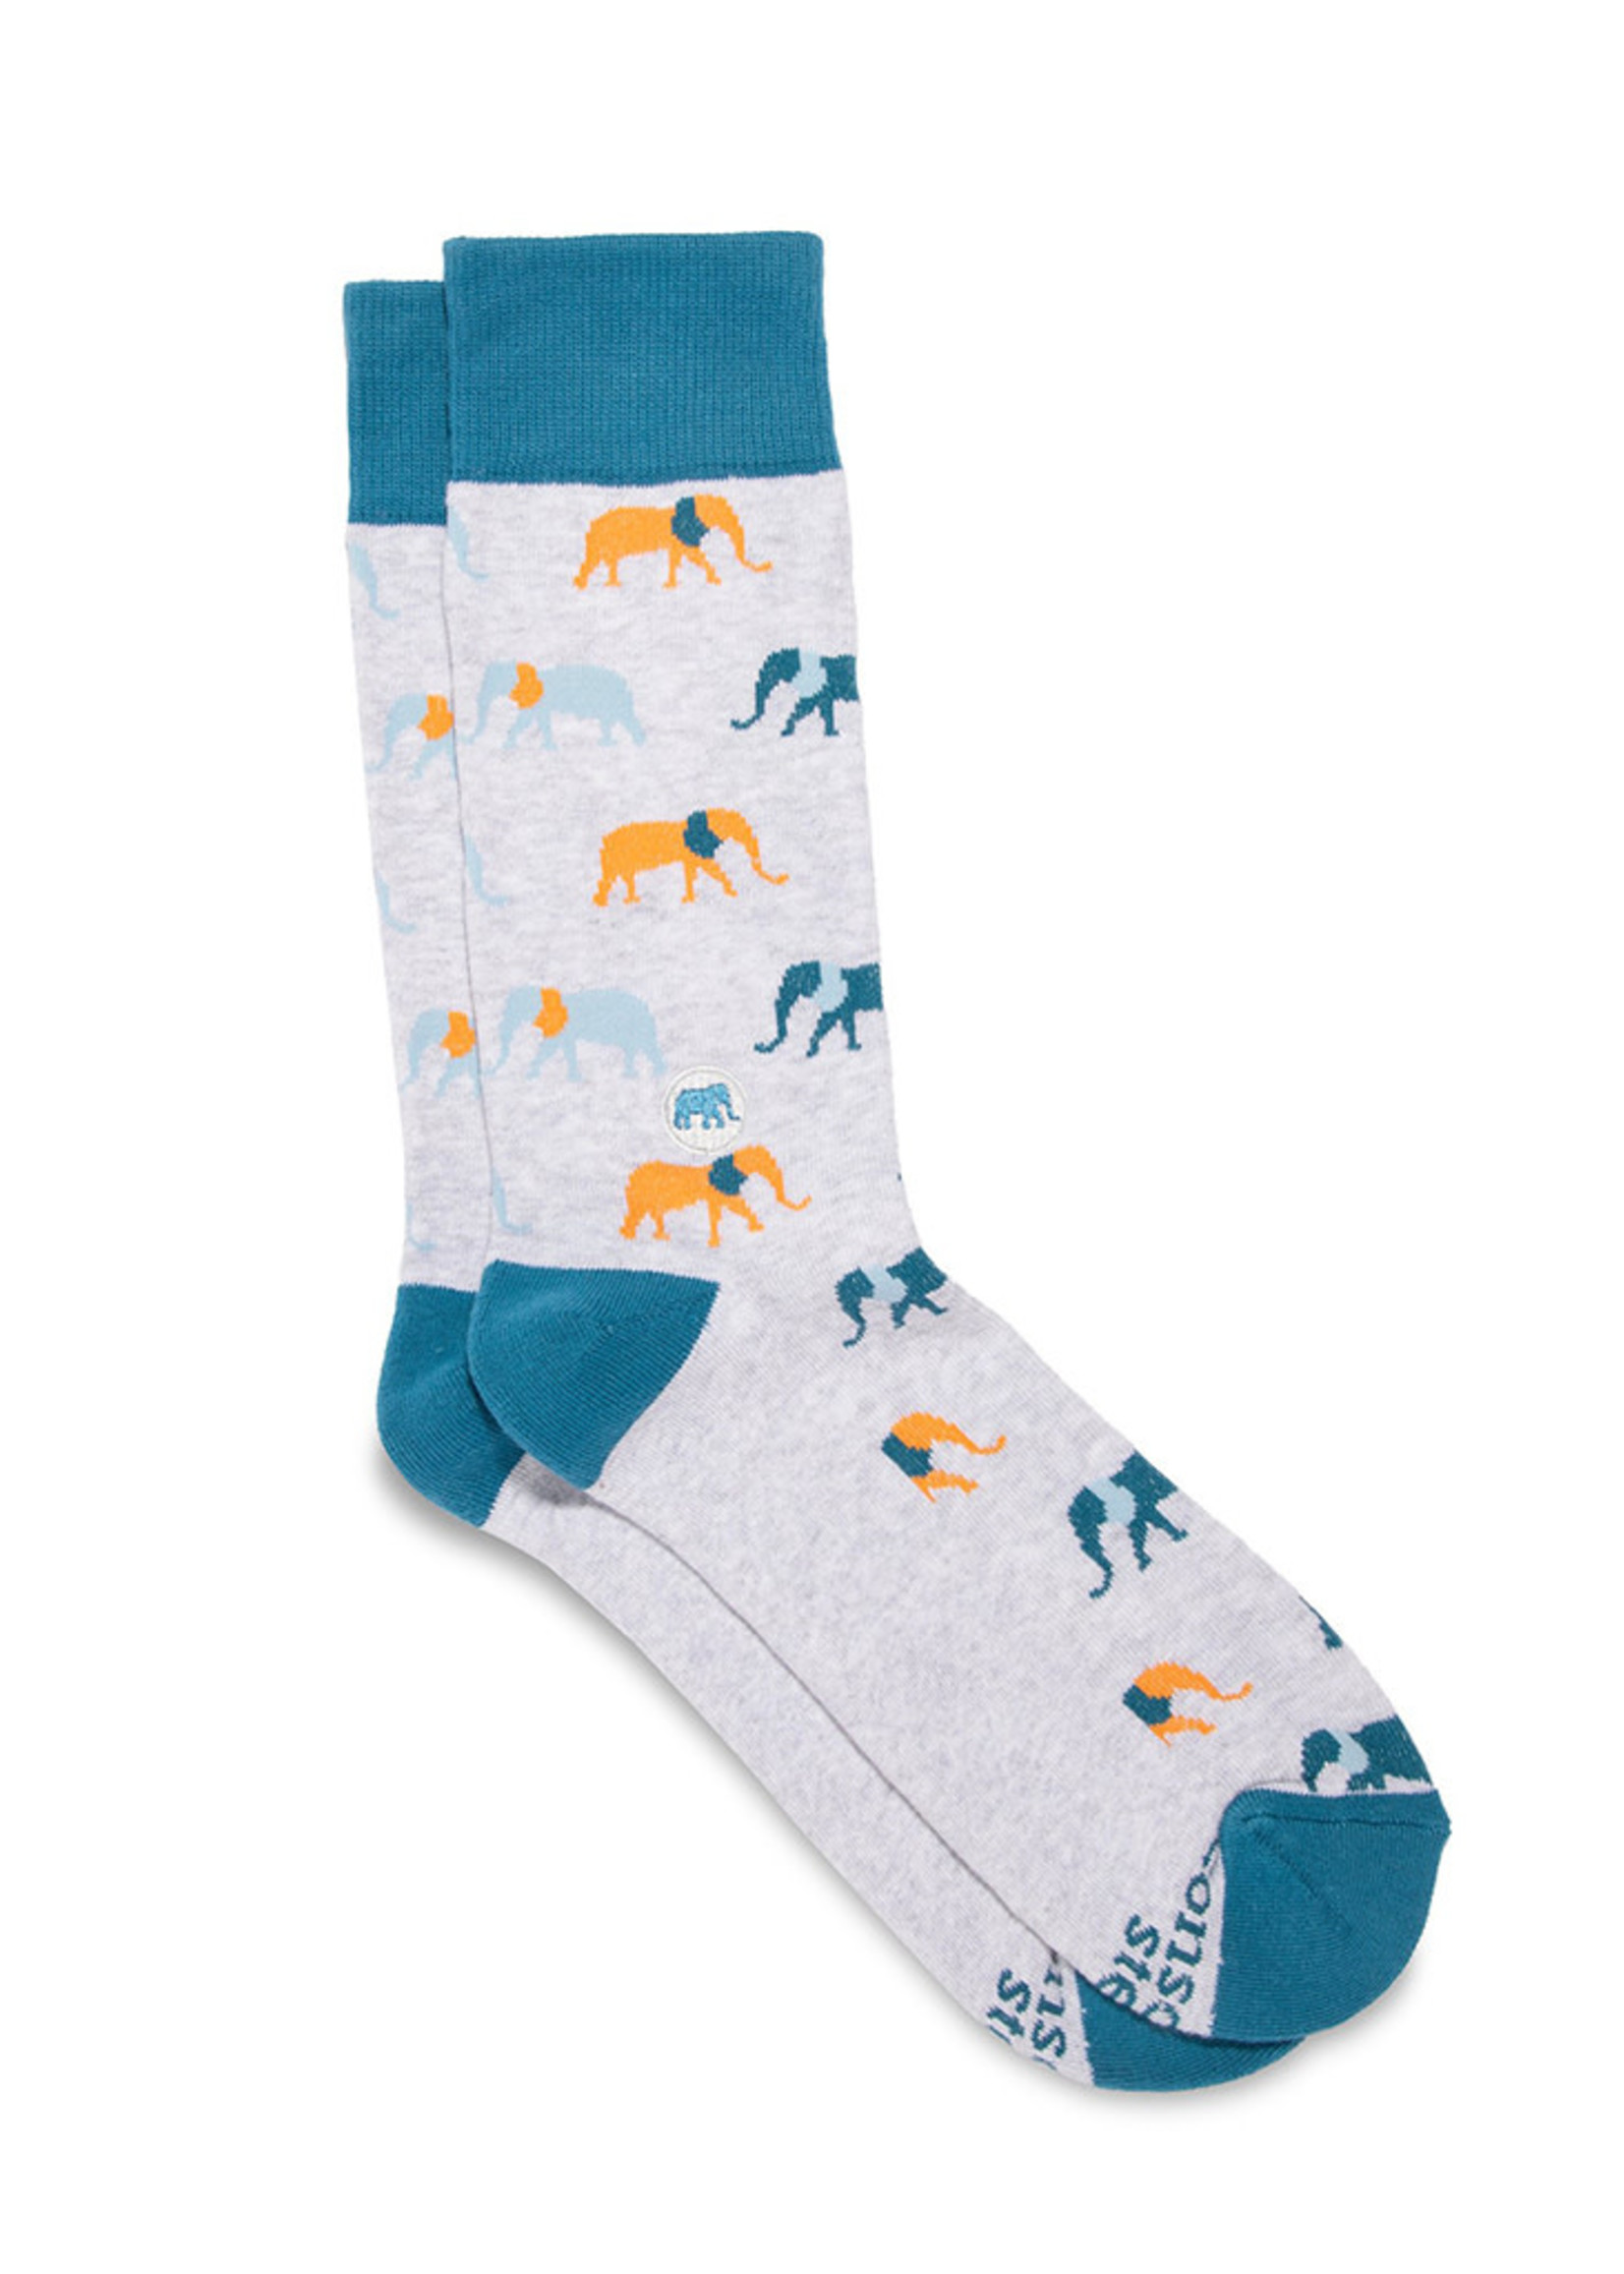 Conscious Step Men's Socks that Protects Elephants